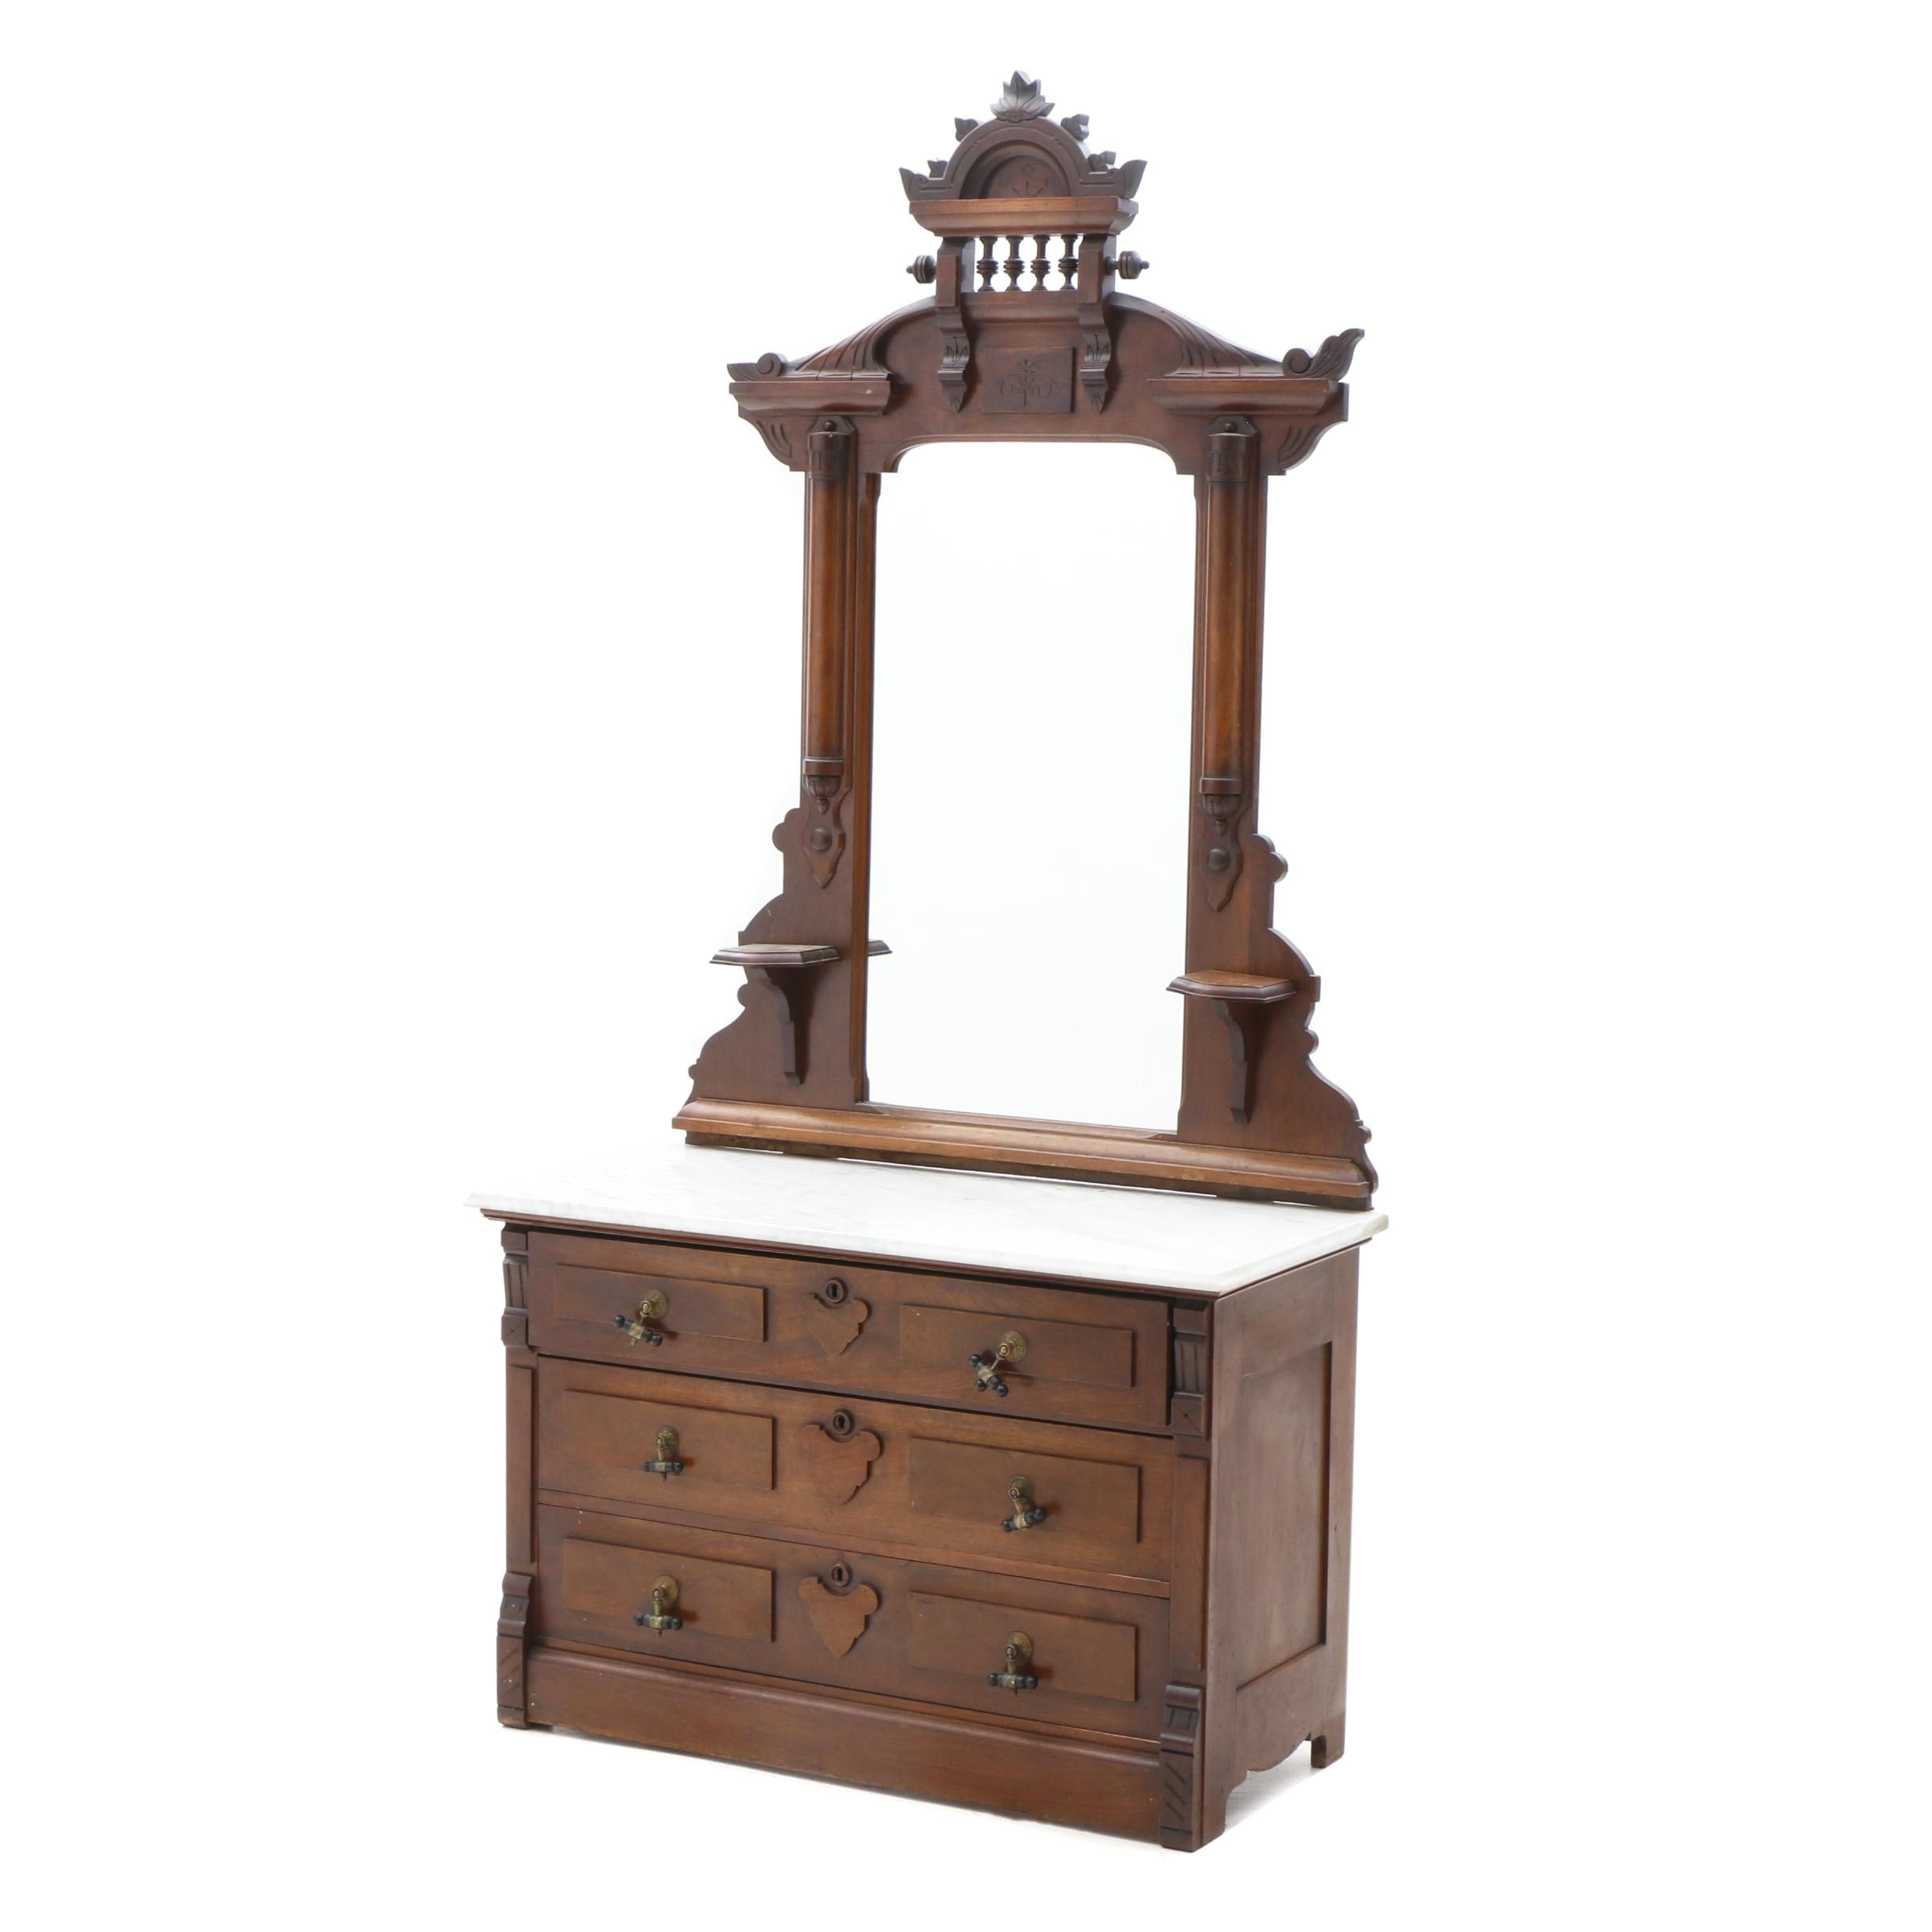 Victorian Walnut and Marble Top Chest of Drawers, Circa 1880